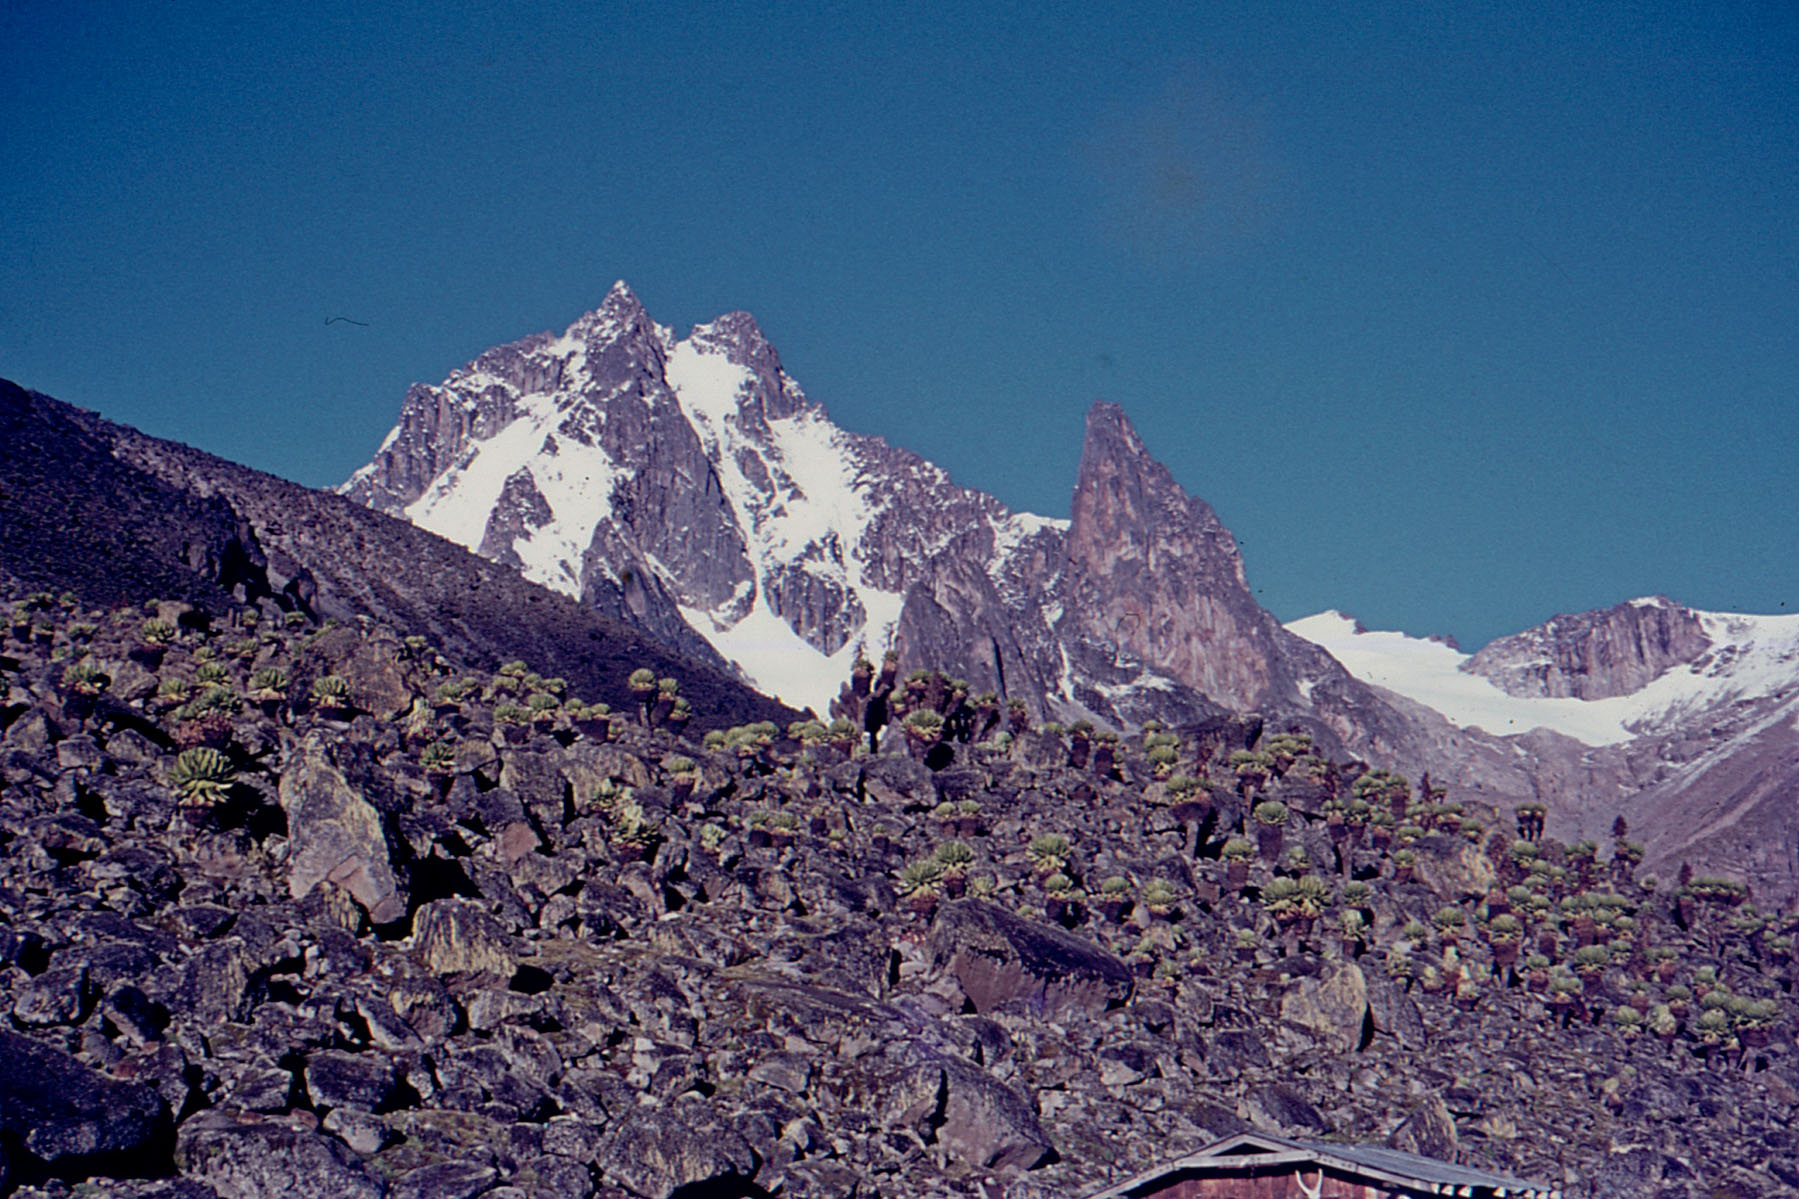 Mt-Kenya-1971004_Low-Res.jpg